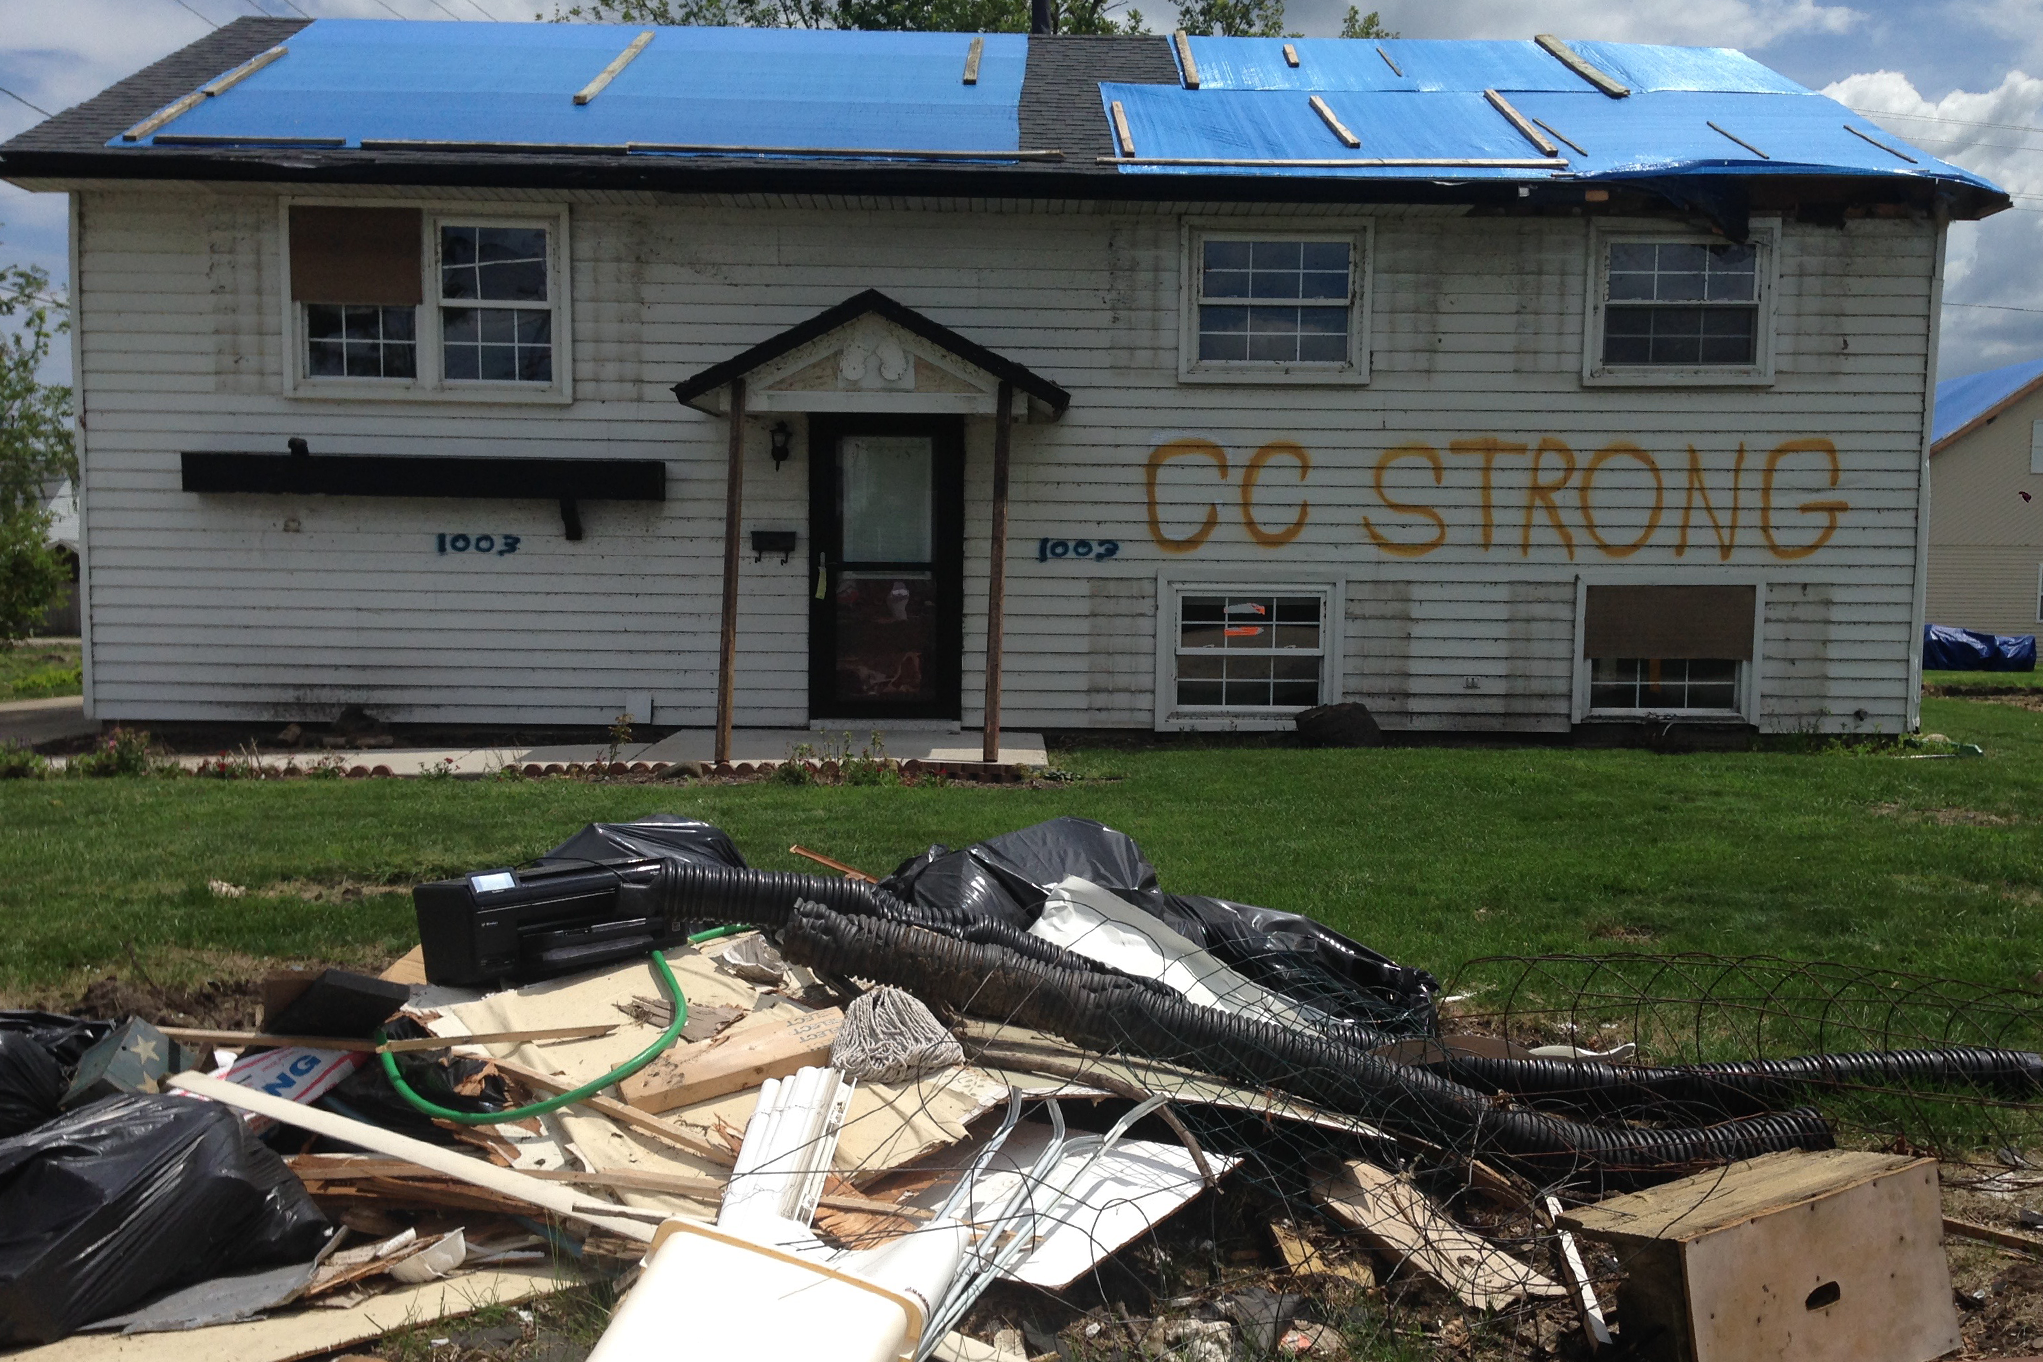 John and Suzanne Lissy's home right after the tornado in 2015. Their daughter spraypainted the phrase COAL CITY STRONG on their soon to be demolished home. (Yolanda Perdomo/WBEZ)